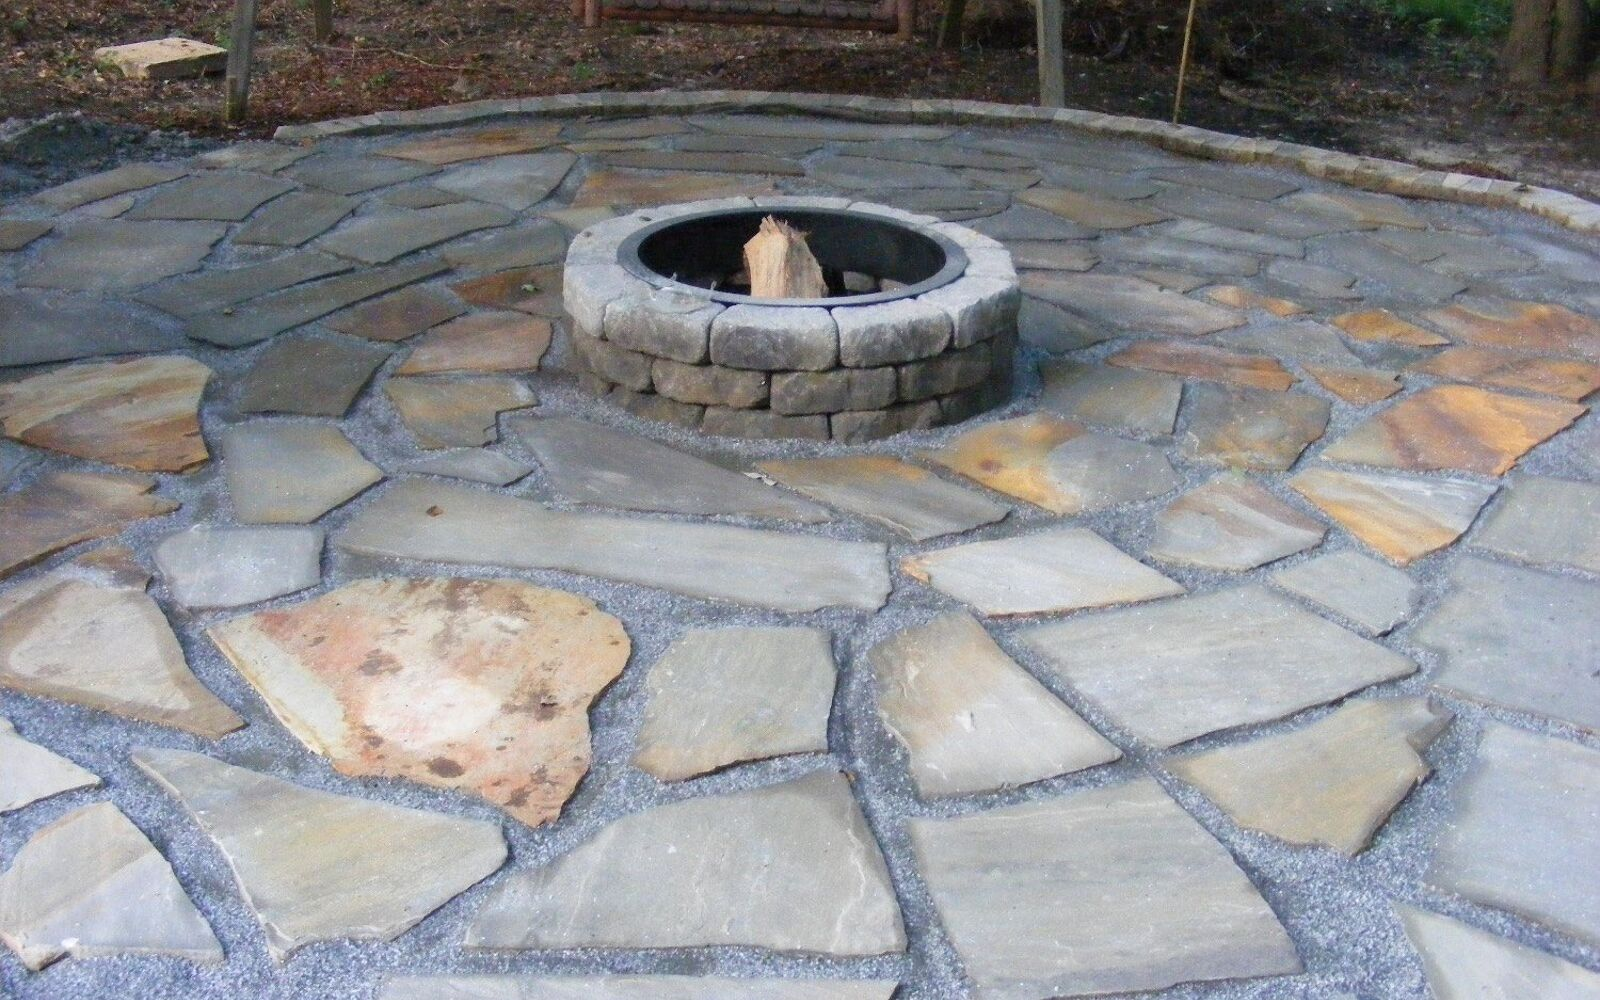 s upgrade your backyard with these 30 clever ideas, Decorate your patio with a flagstone fire pit